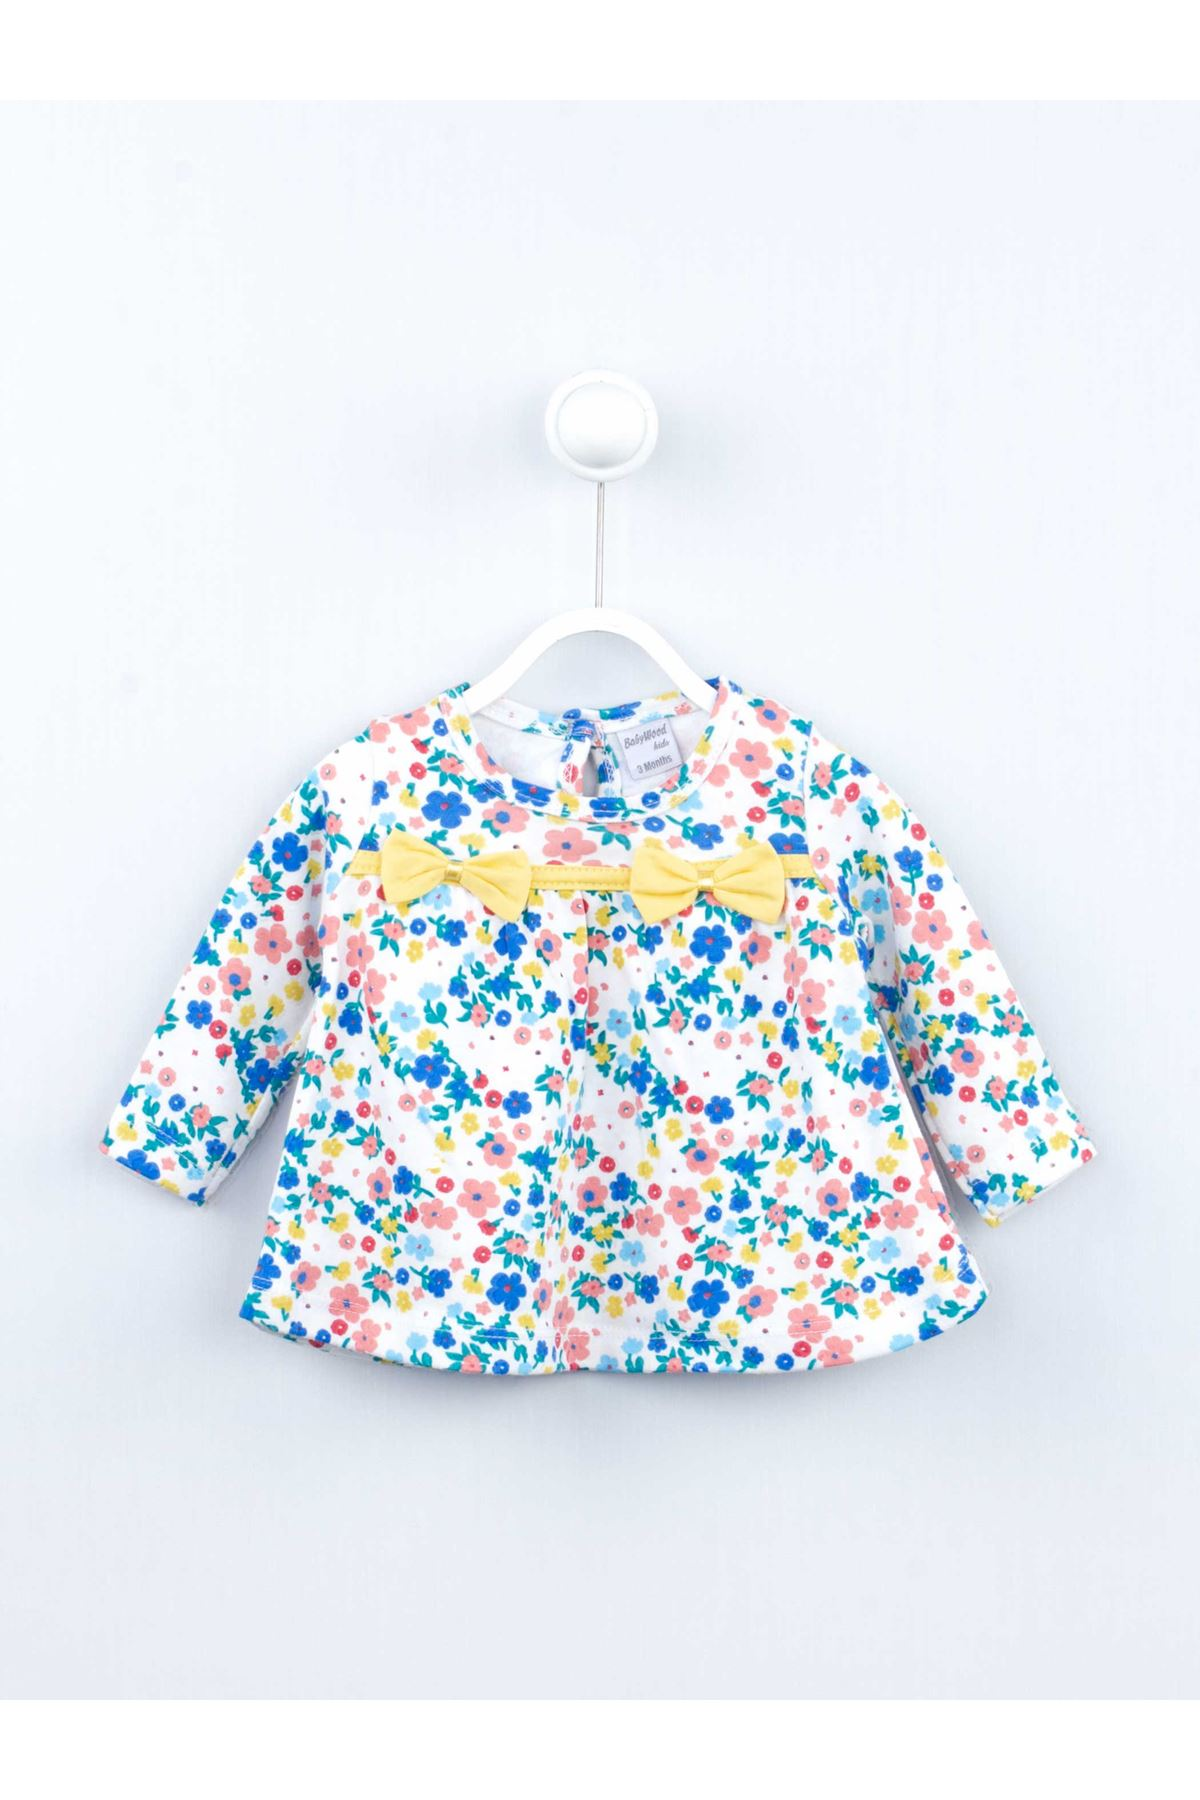 Yellow Baby Girl Daily 2 Piece Suit Set Cotton Daily Seasonal Casual Wear Girls Babies Suit Outfit Models